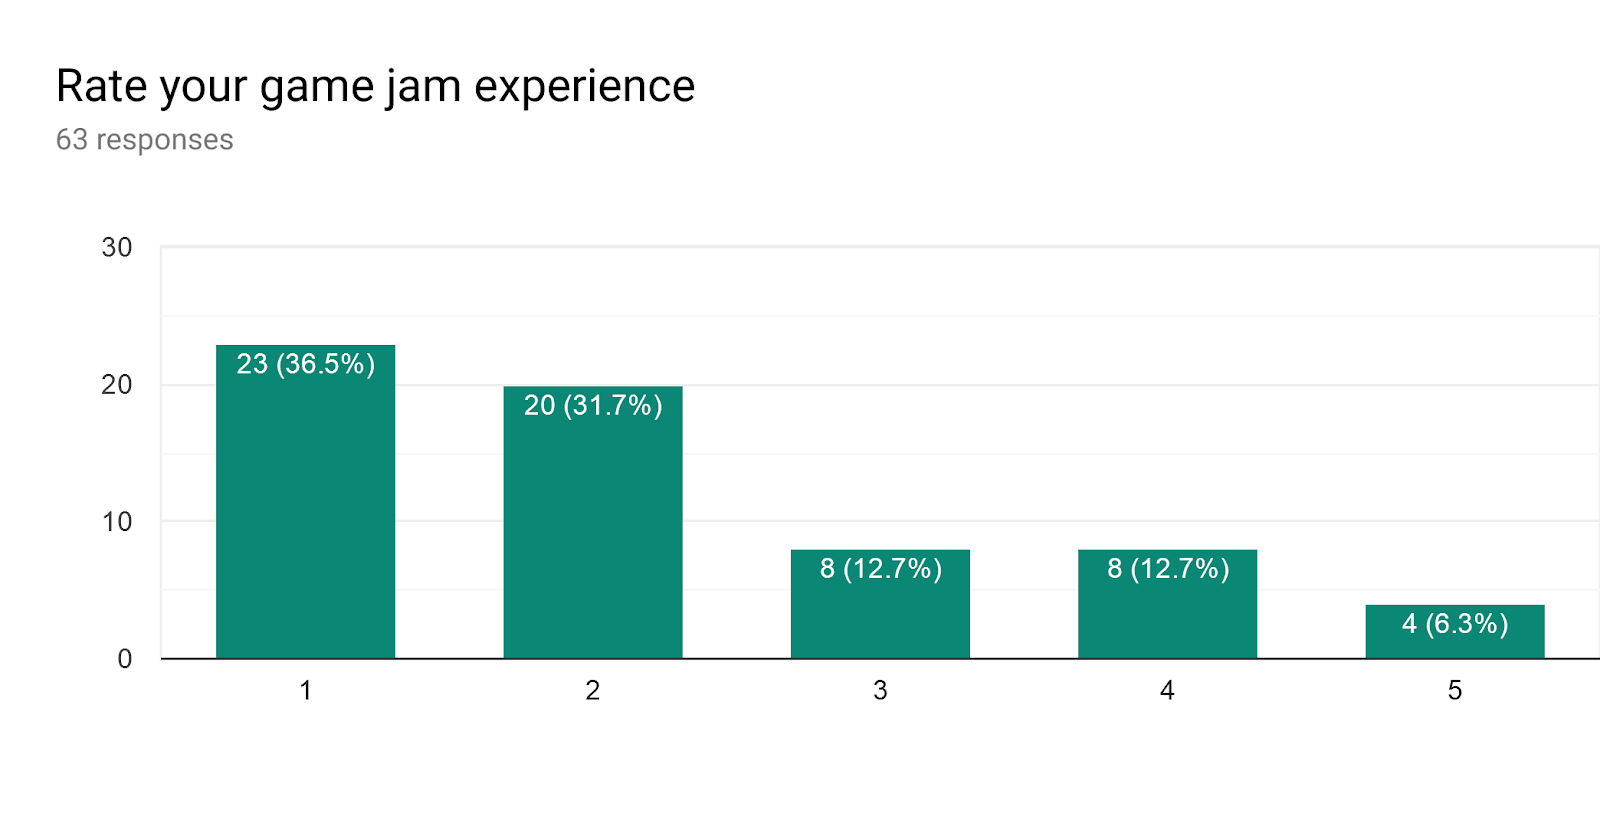 Forms response chart. Question title: Rate your game jam experience. Number of responses: 63 responses.